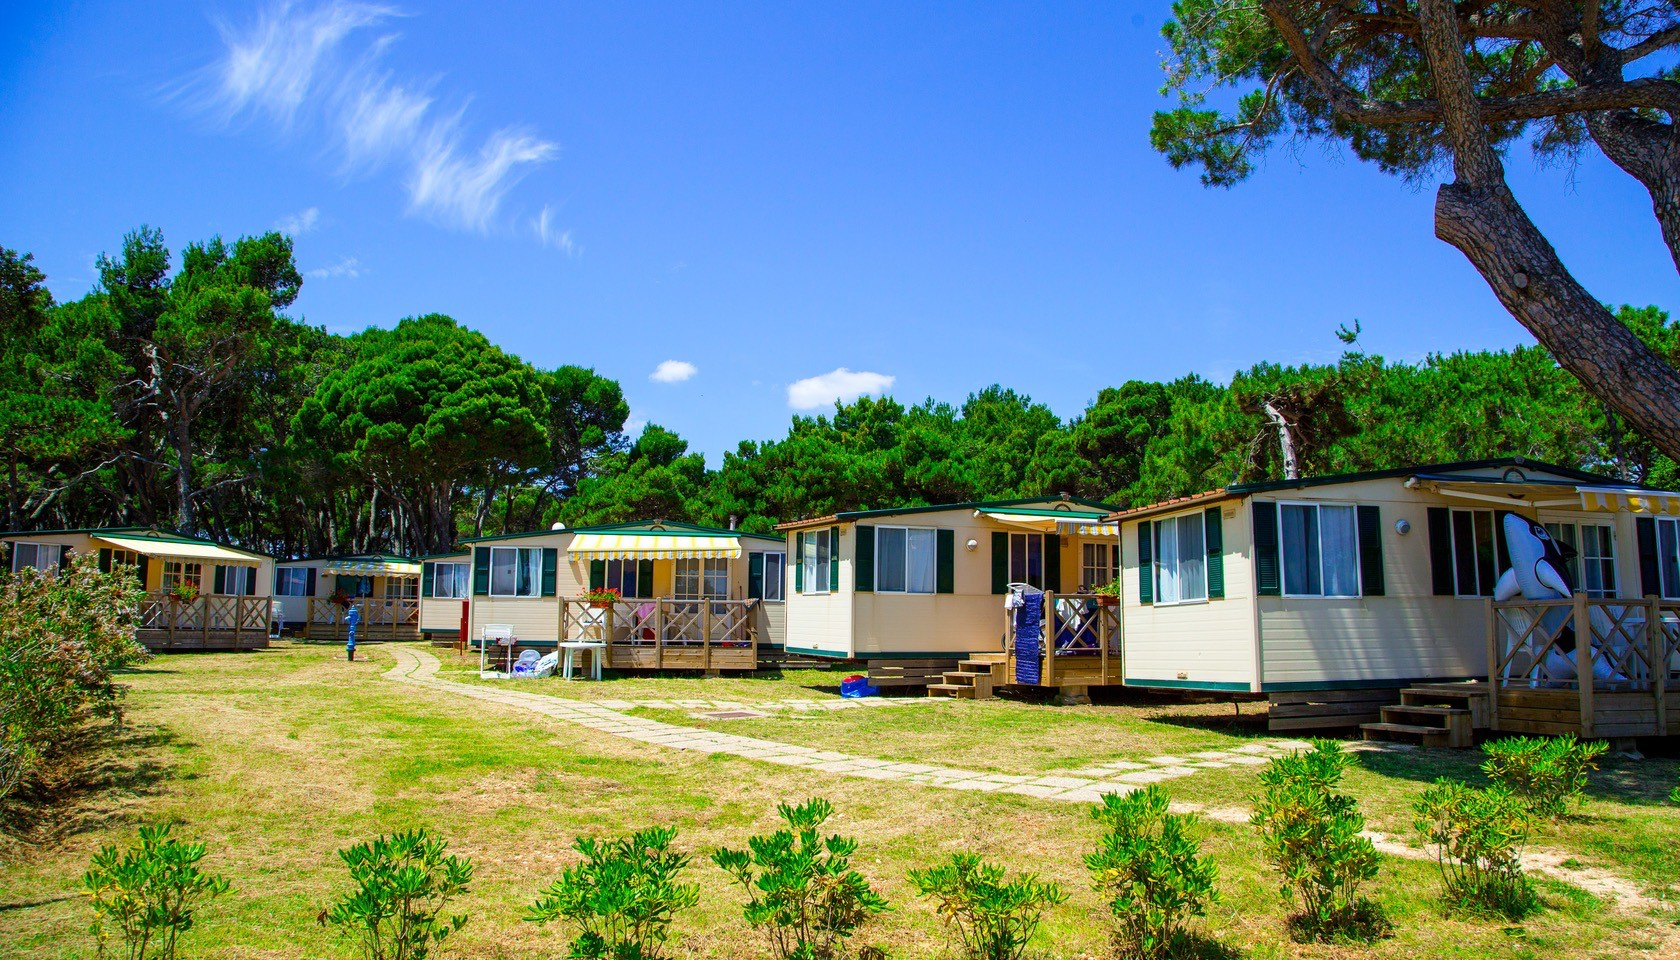 Mobile homes arena medulin arenacamps for Mobiles wohnhaus